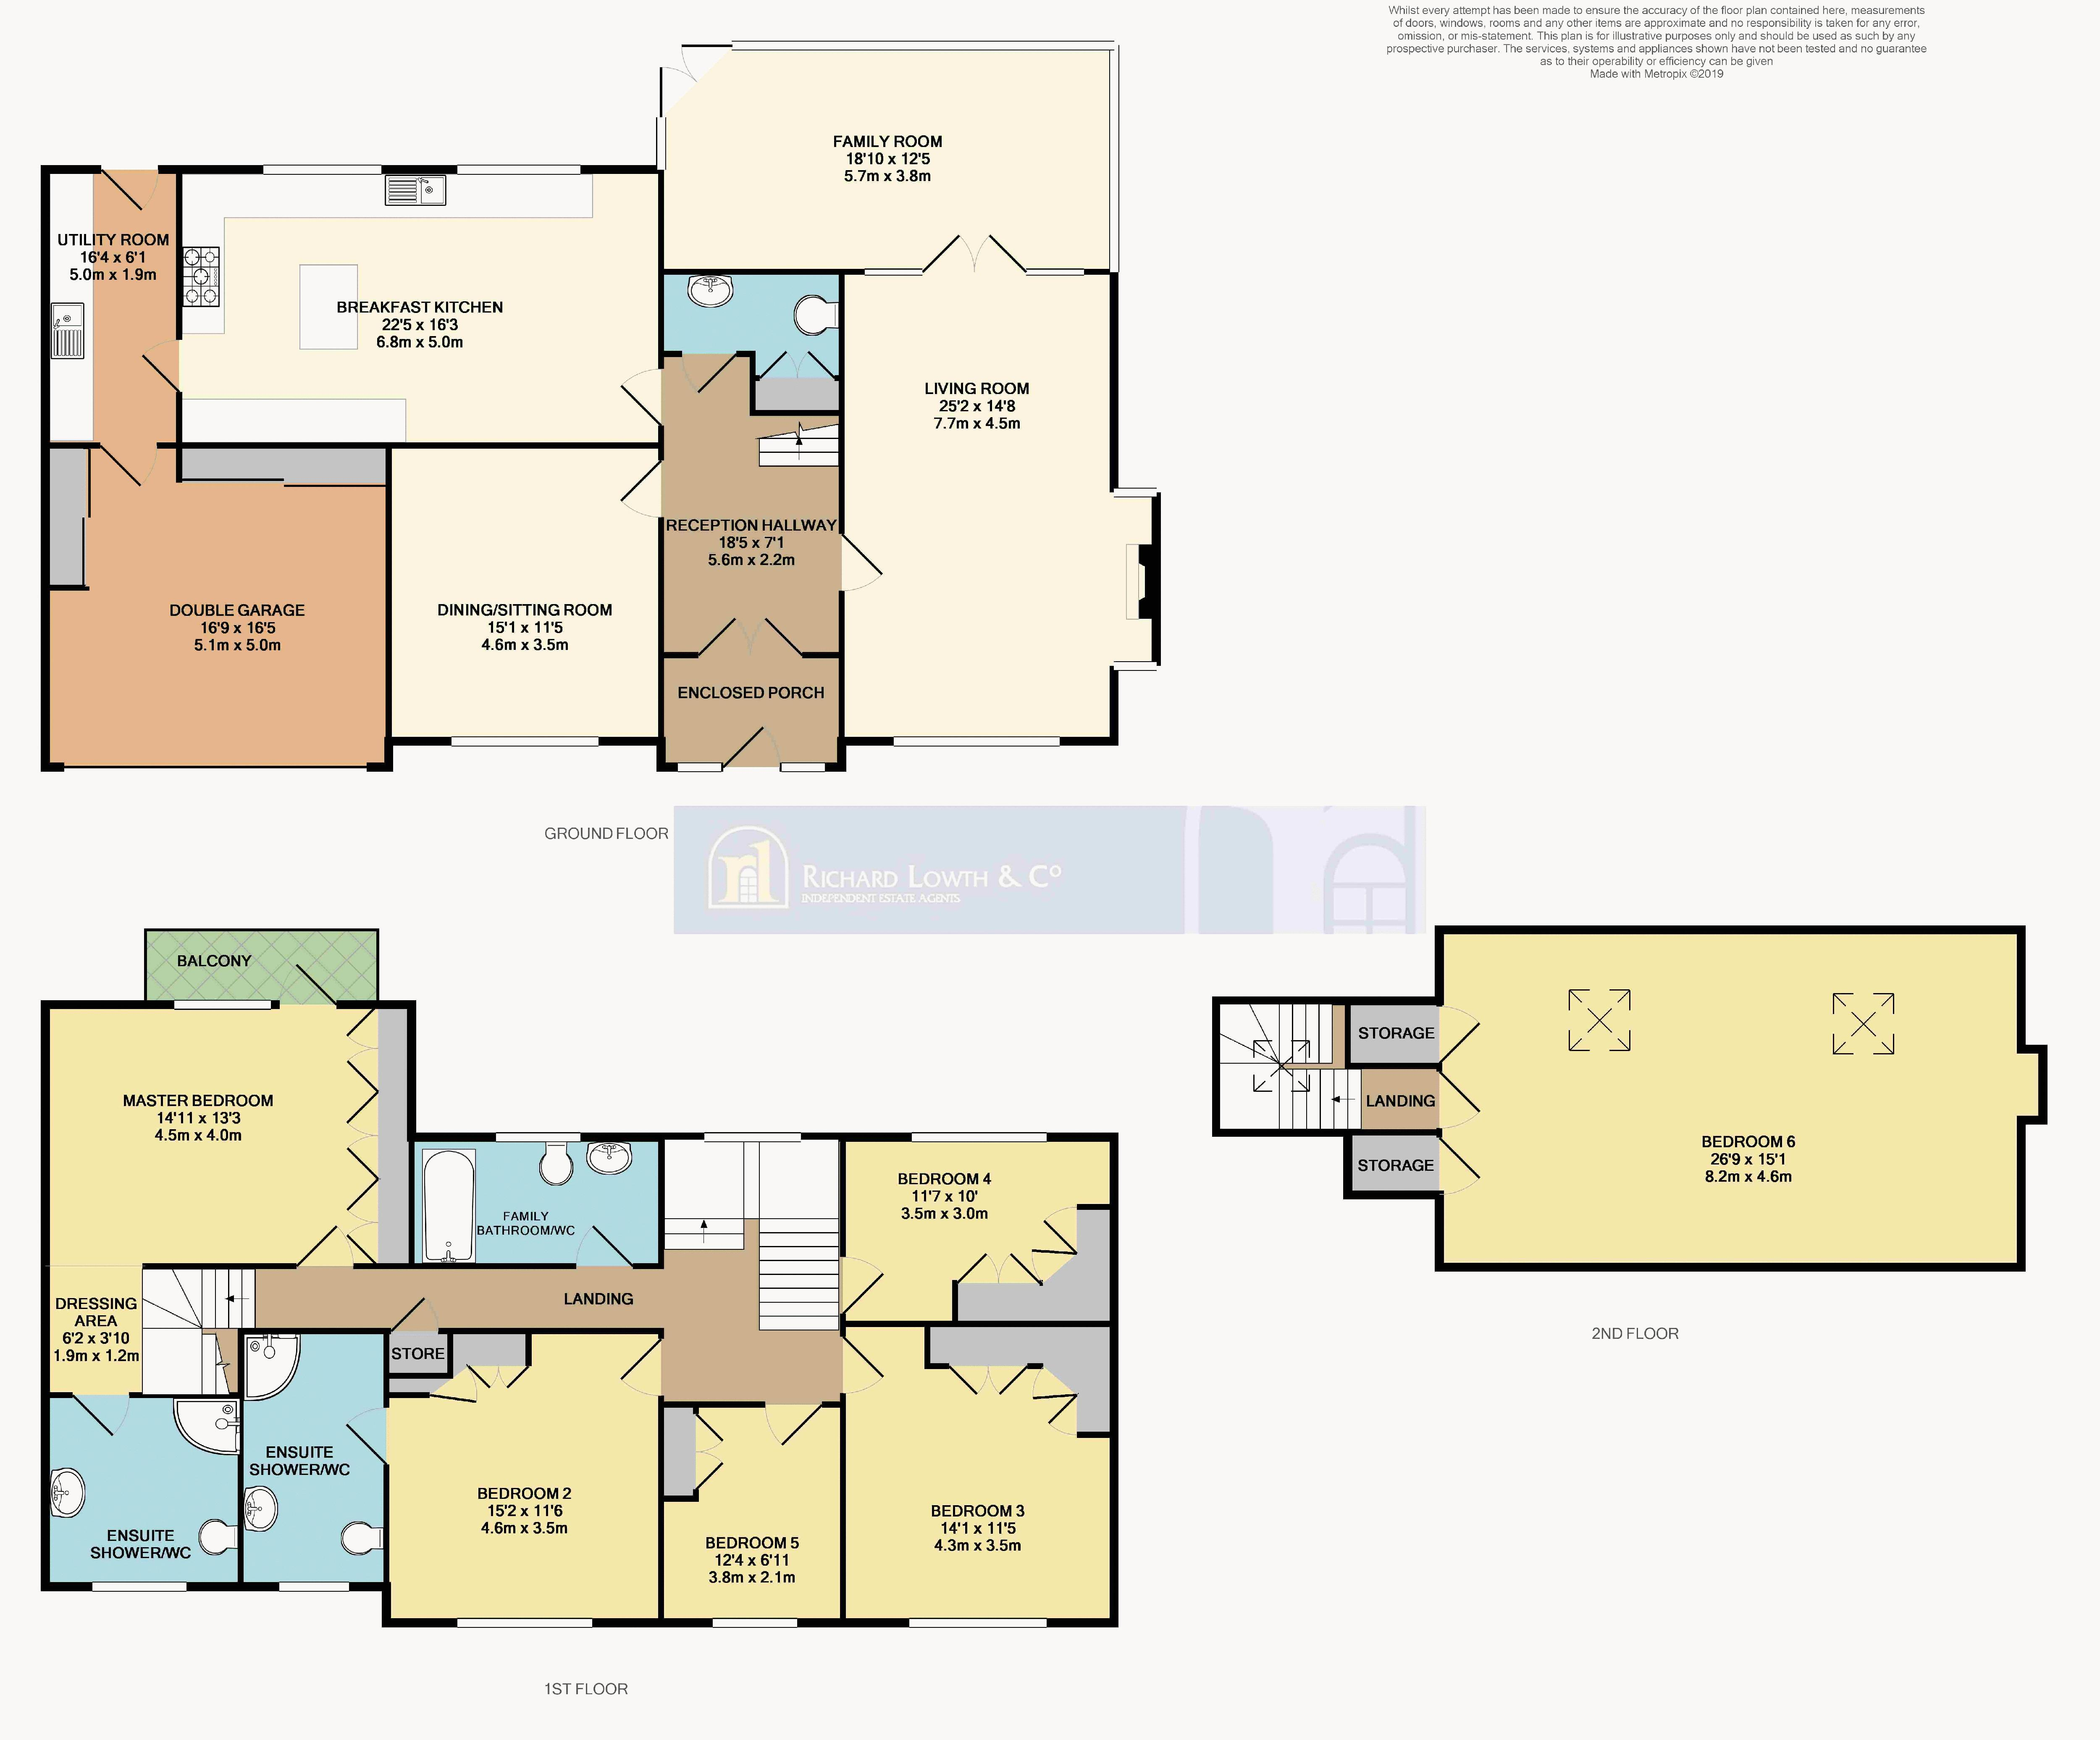 Floorplans For WOODFORD (CHESTER ROAD)